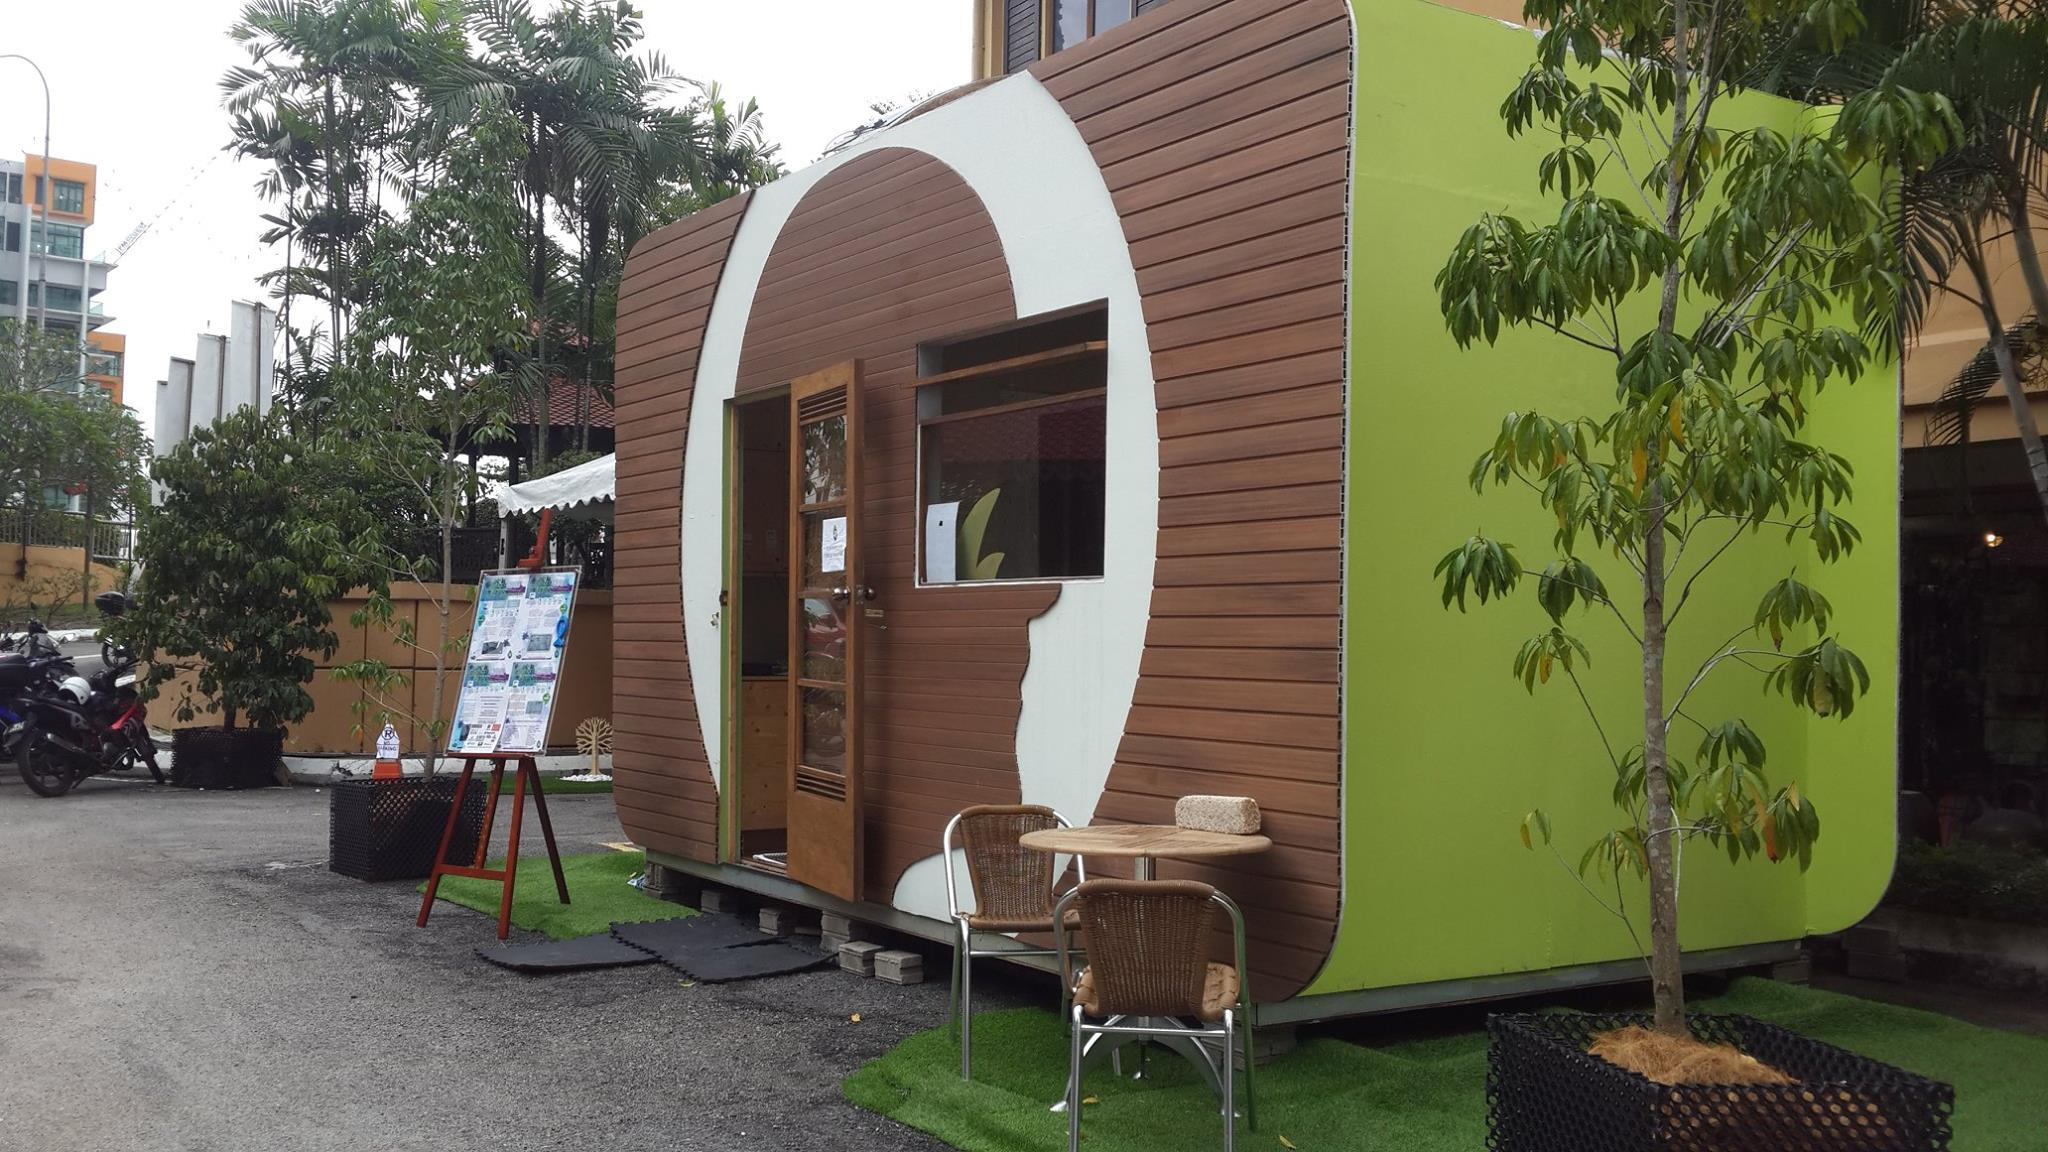 Greenman tiny home malaysia s first sustainable zero for Small house design malaysia